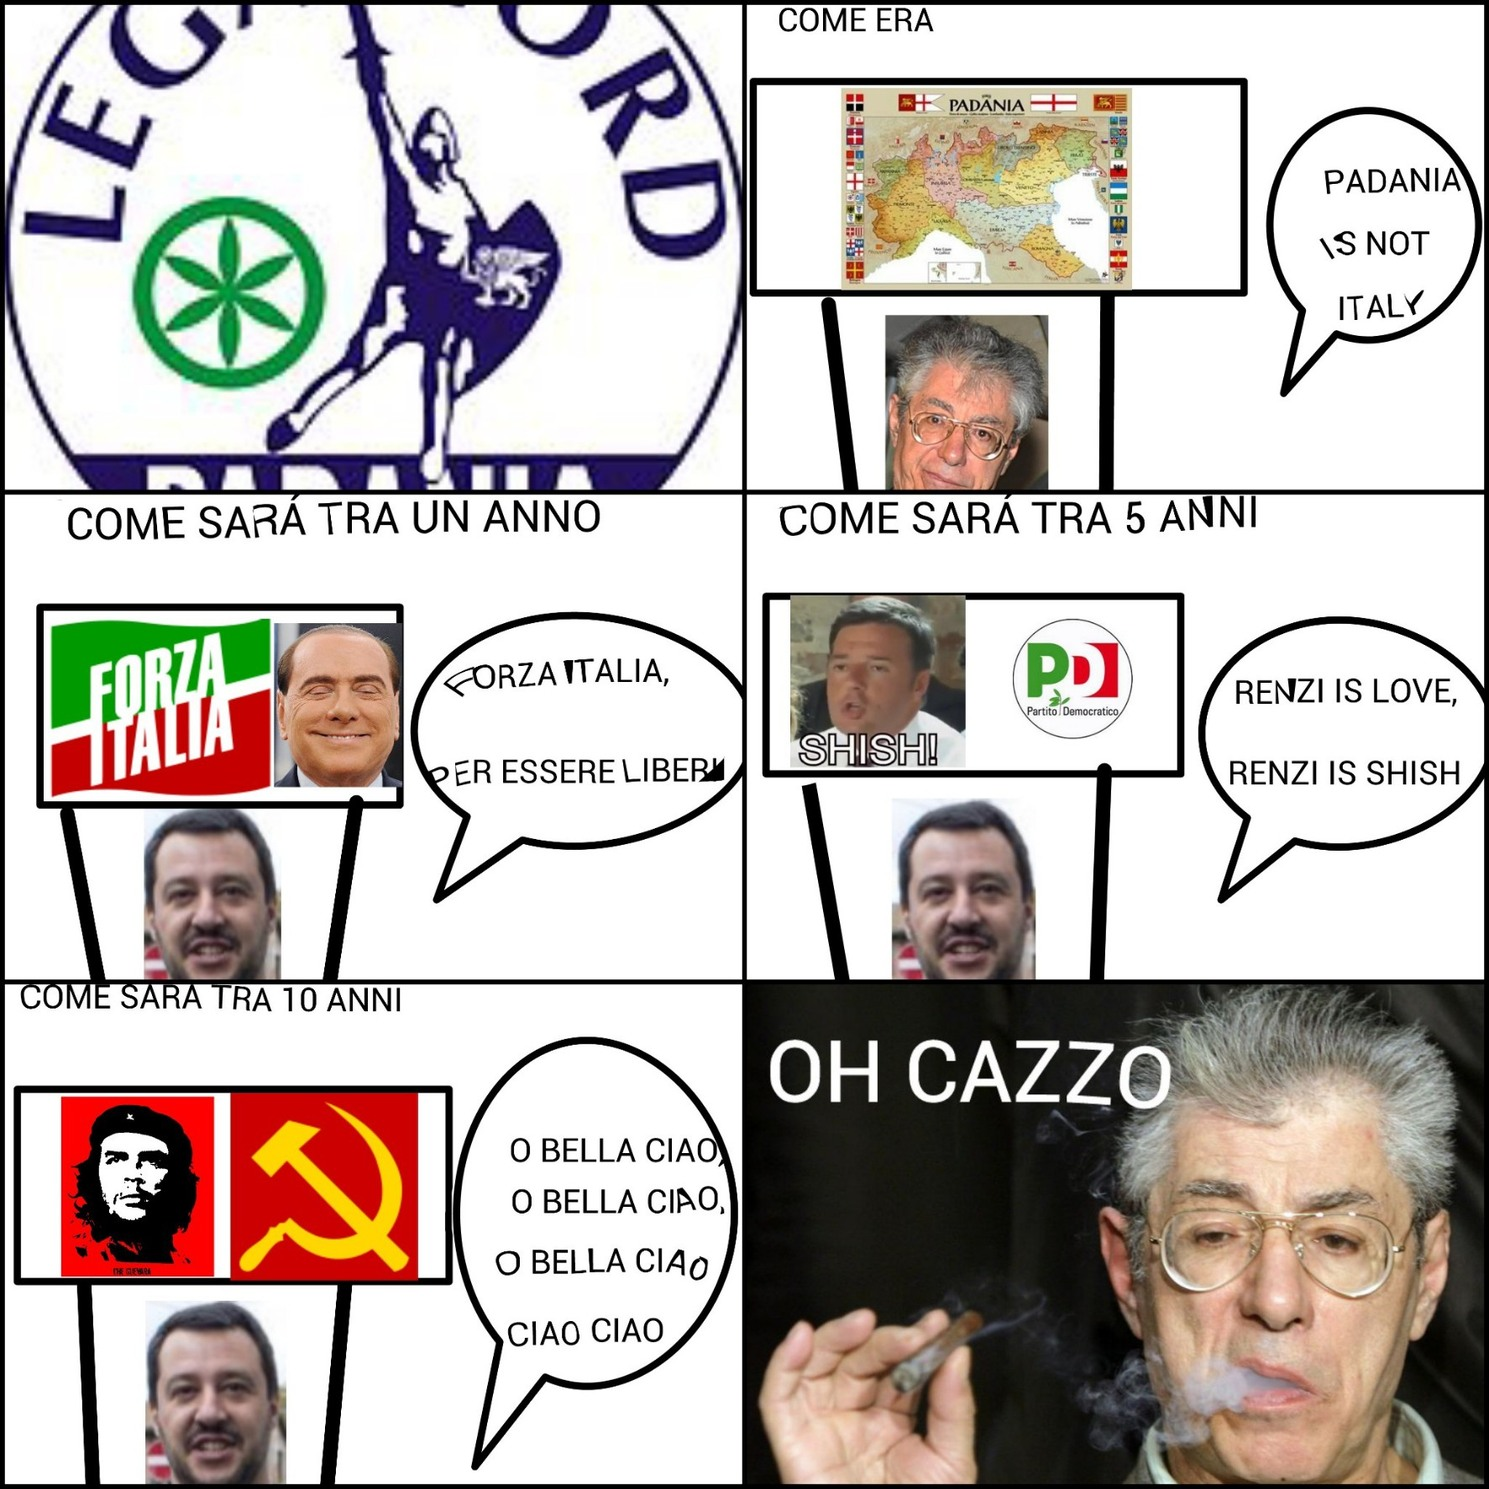 Come Salvini sta degradando la Lega Nord - meme